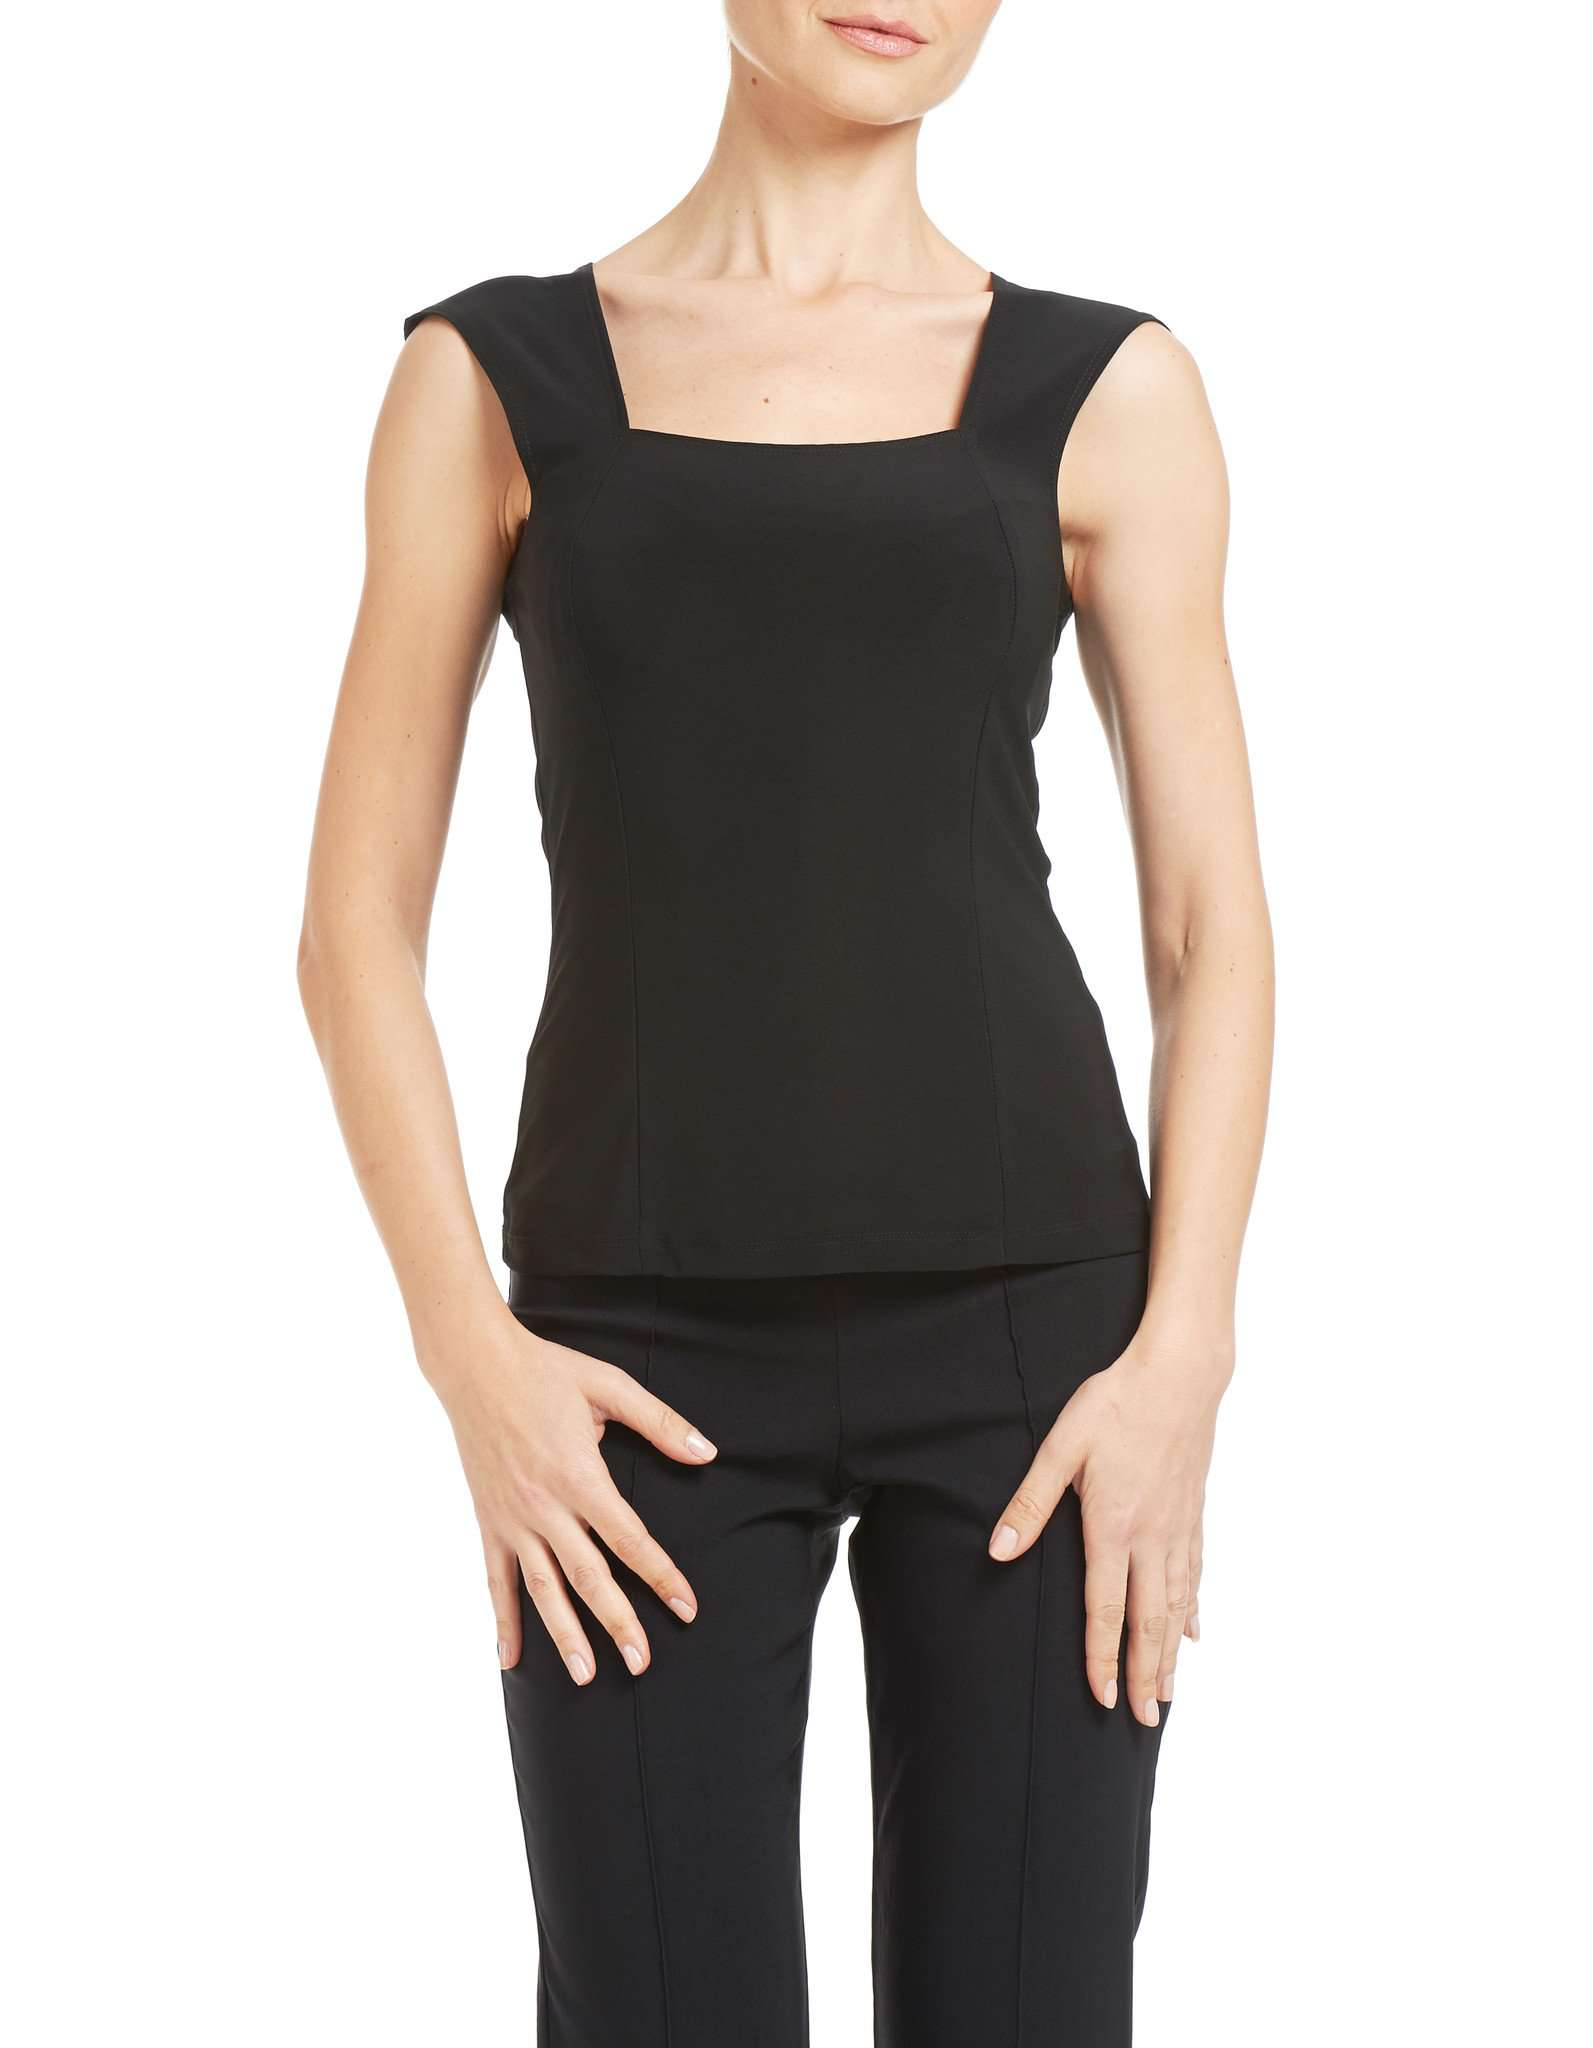 Camisole Black Square Neck Design Top Quality Fabric-Wardrobe Essential Our best Seller - Yvonne Marie